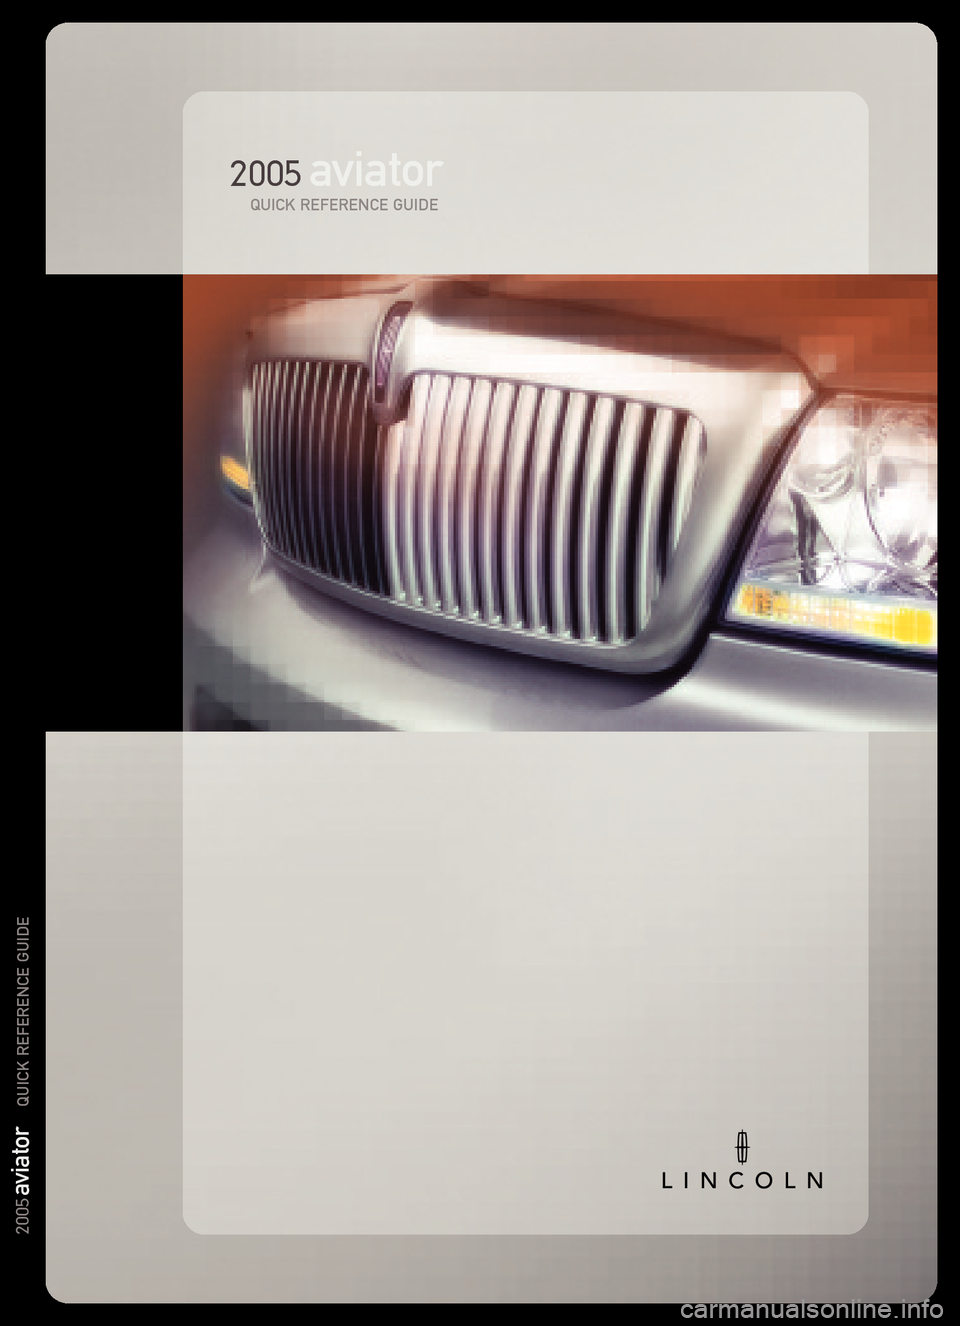 LINCOLN AVIATOR 2005  Quick Reference Guide, Page 6